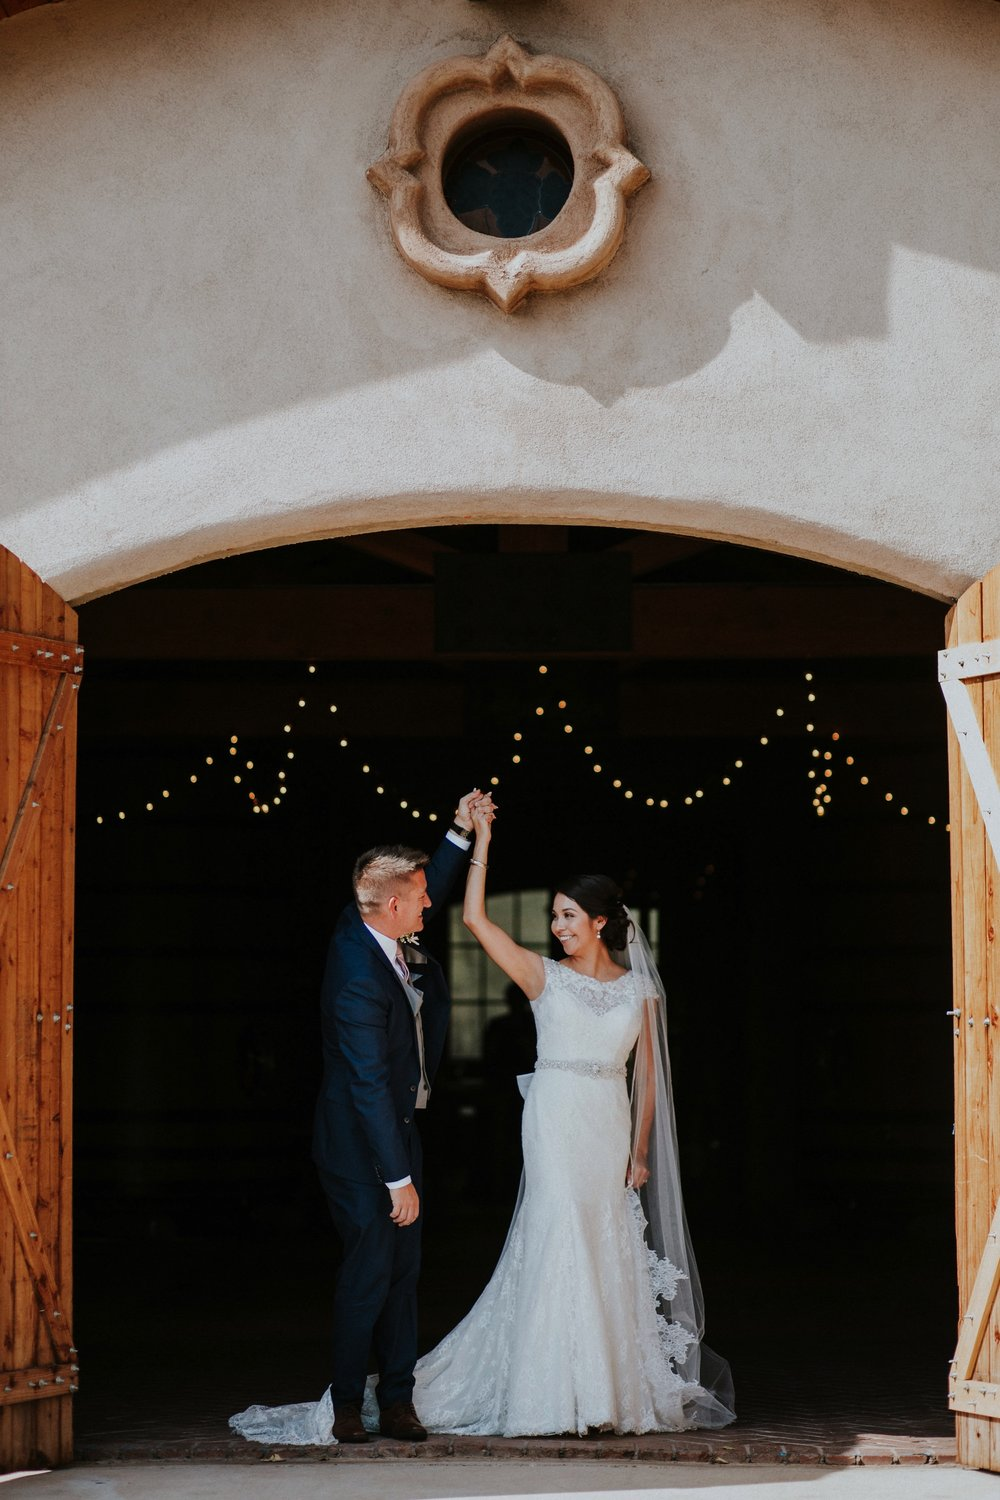 00000000000000096_casa-rondena-winery-wedding-photos_Cosner_Los-Ranchos-New-Mexico-Wedding-Photographer-37.jpg